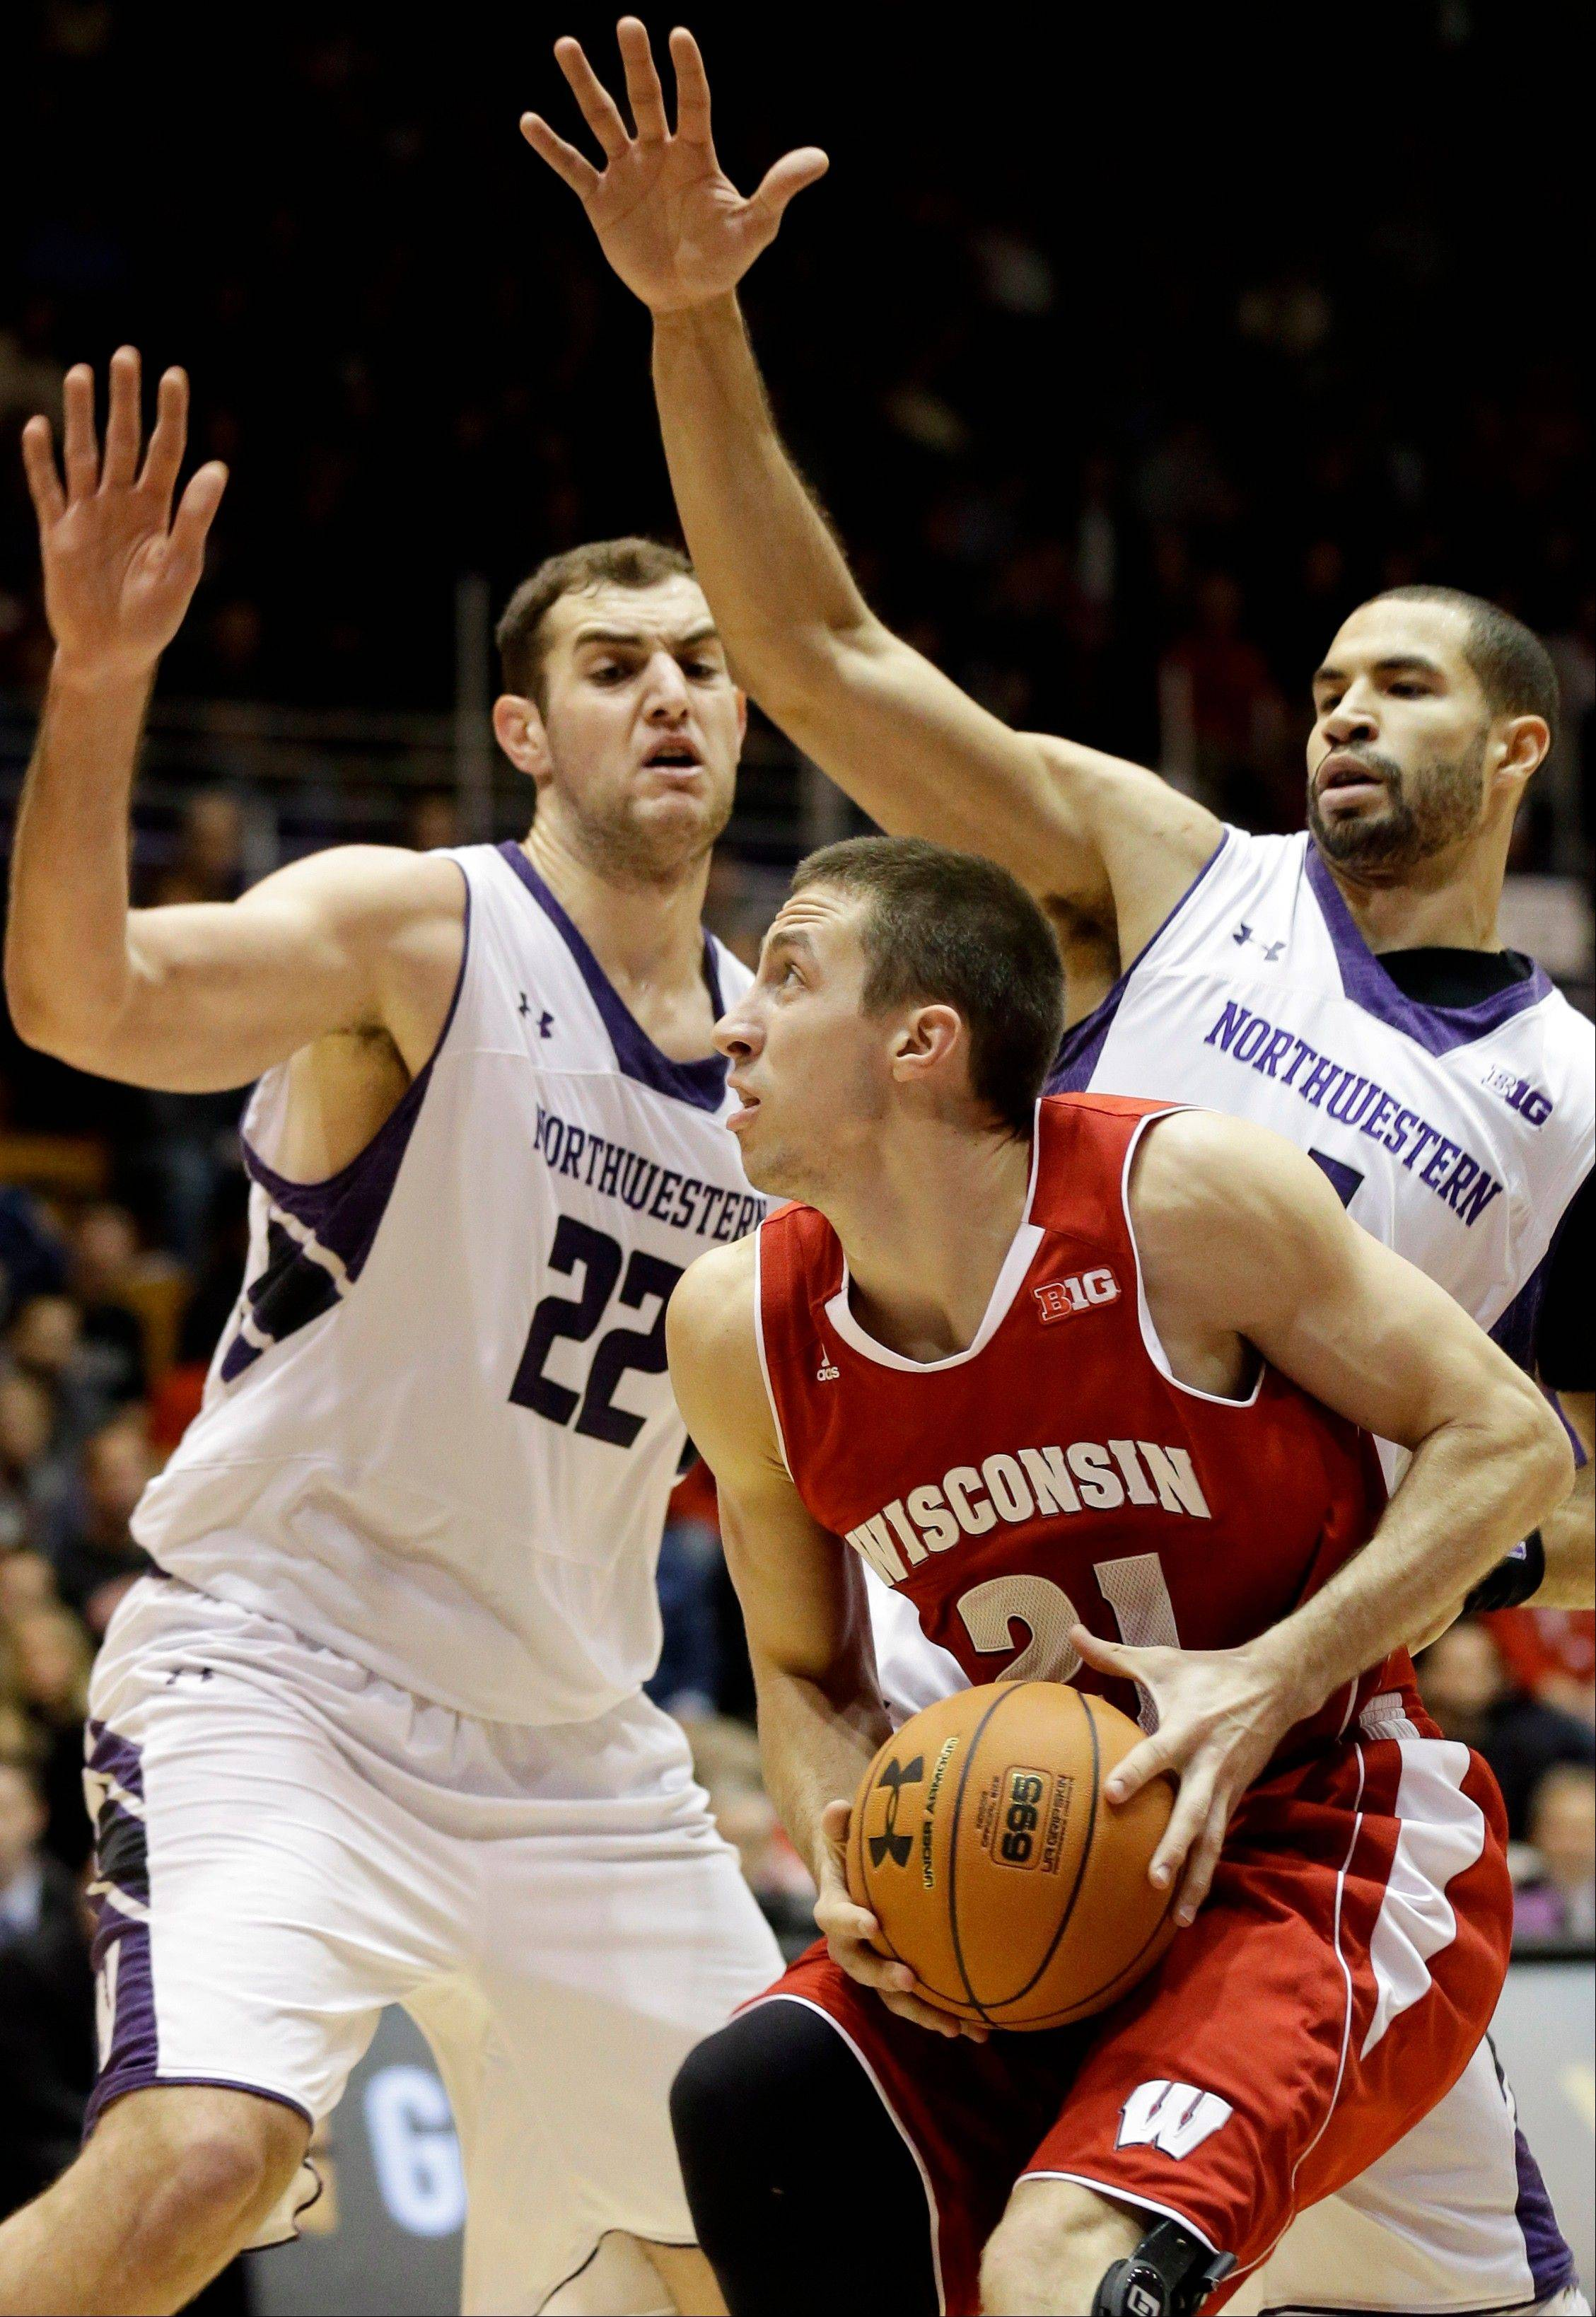 Wisconsin's Josh Gasser (21) looks to the basket as Northwestern center Alex Olah (22) and guard Drew Crawford, left, defend during the first half of an NCAA college basketball game in Evanston, Ill., on Thursday, Jan. 2, 2014. (AP Photo/Nam Y. Huh)